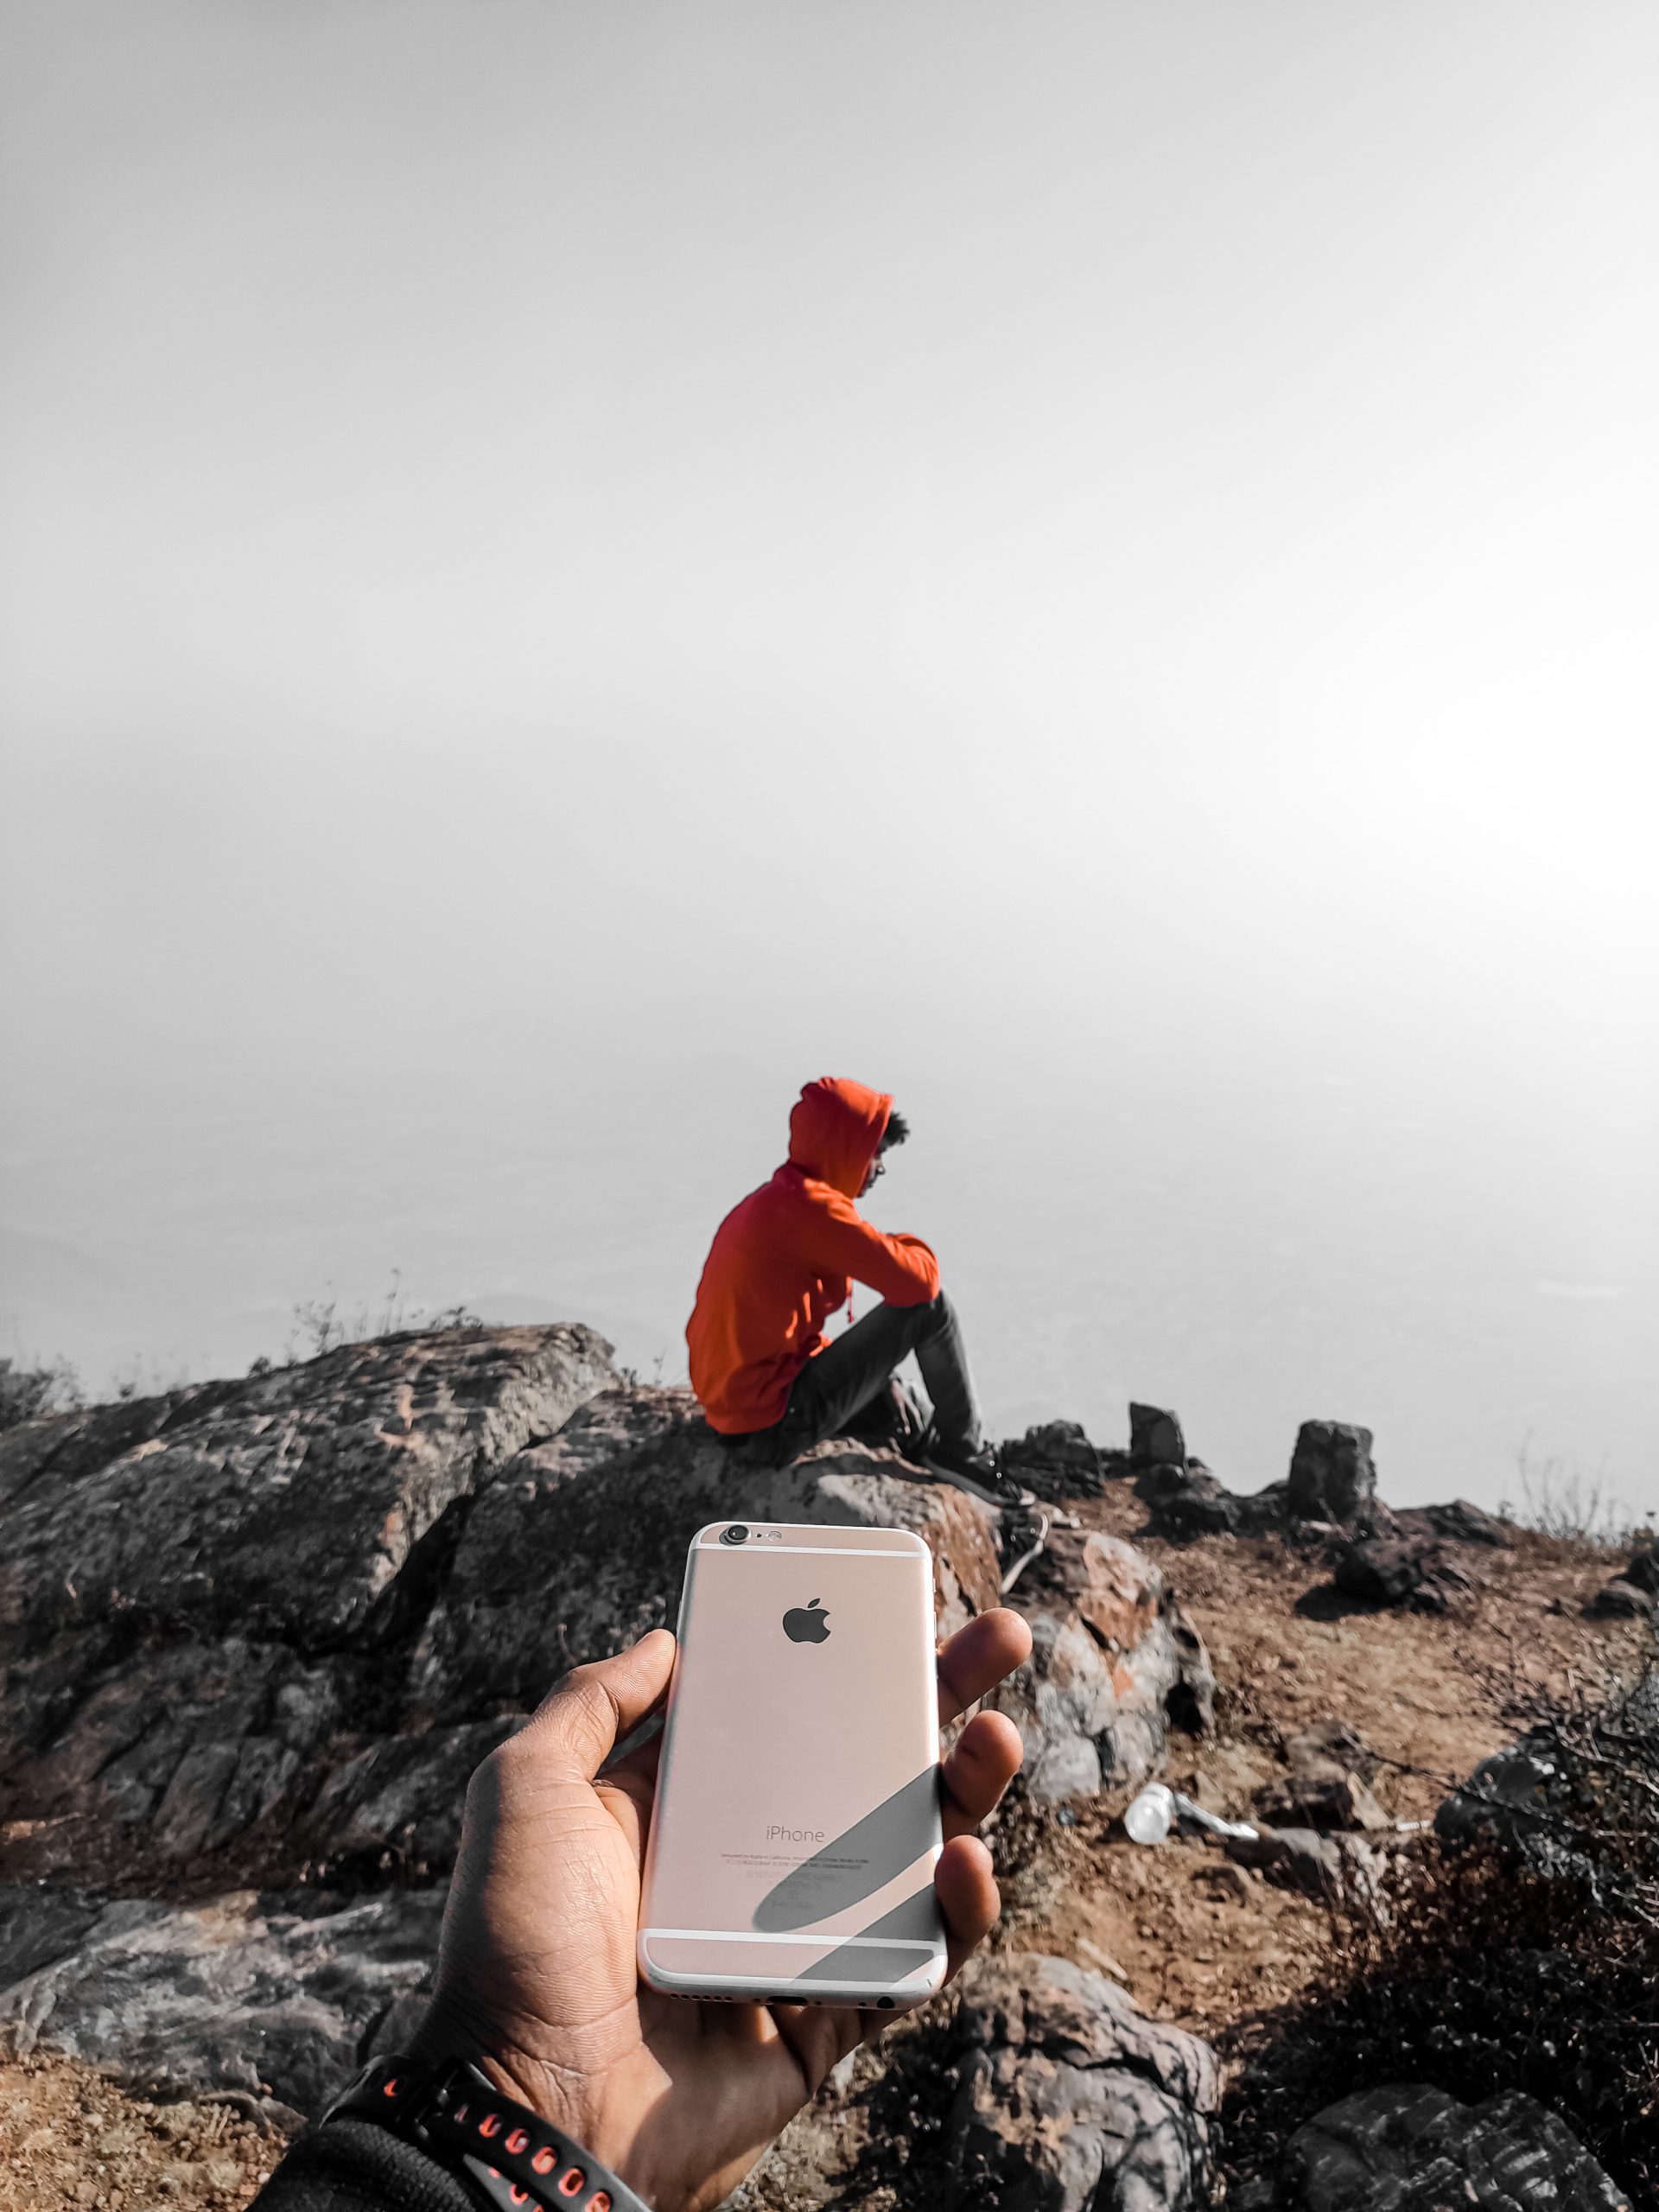 Pointing phone to a boy on hills